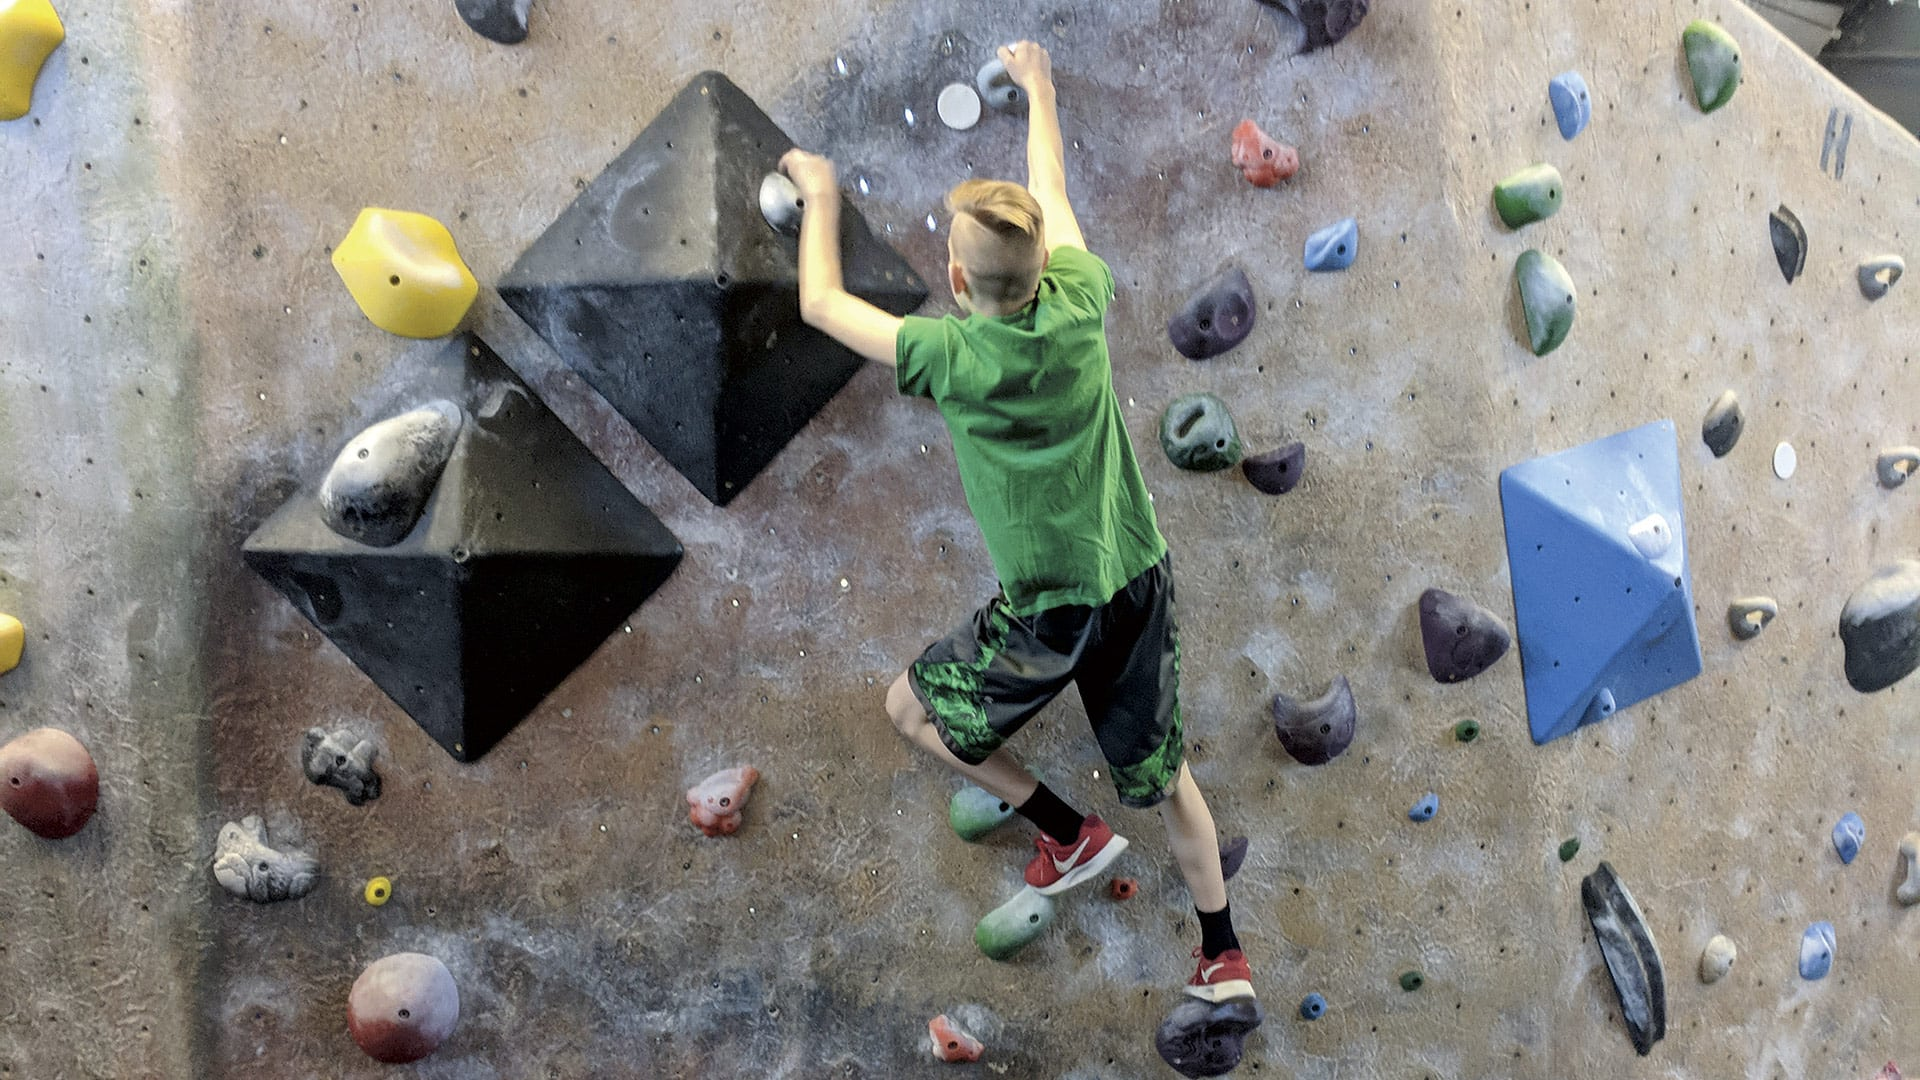 The no-harness activity known as boulder-ing gives climbers a different type of experience.